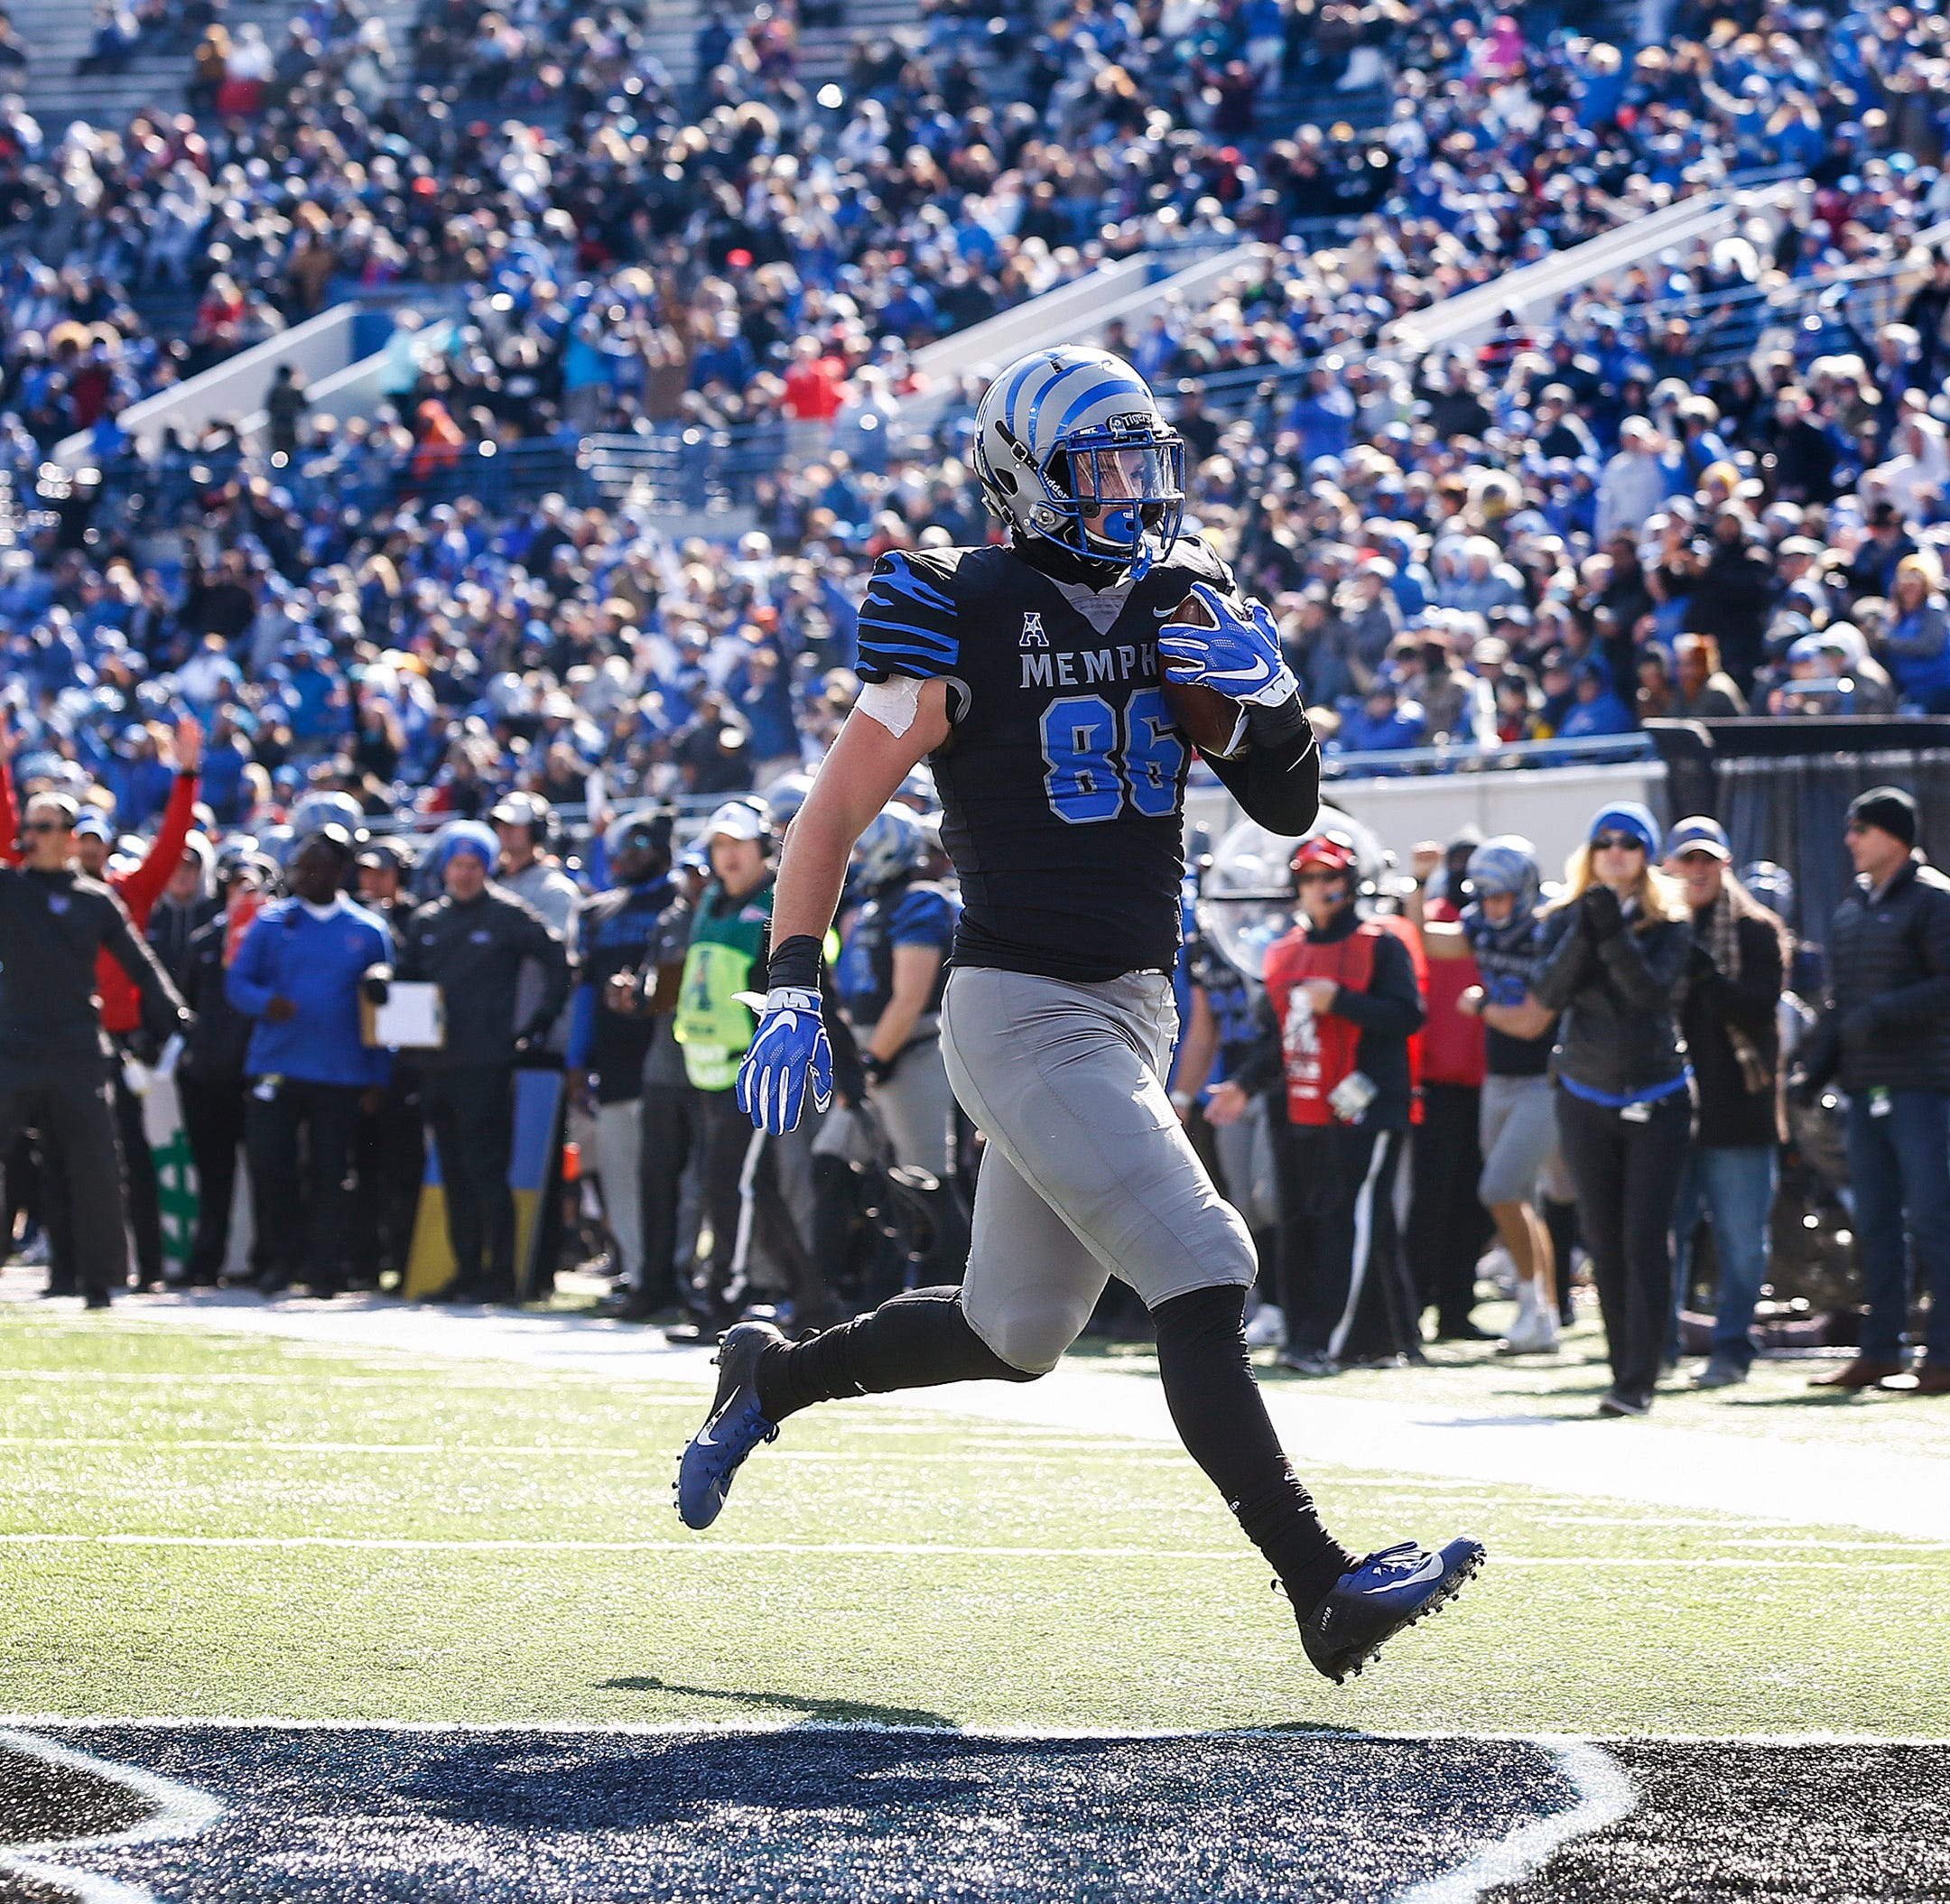 Memphis football is bowl eligible for the fifth year in a row. It's still a significant feat.